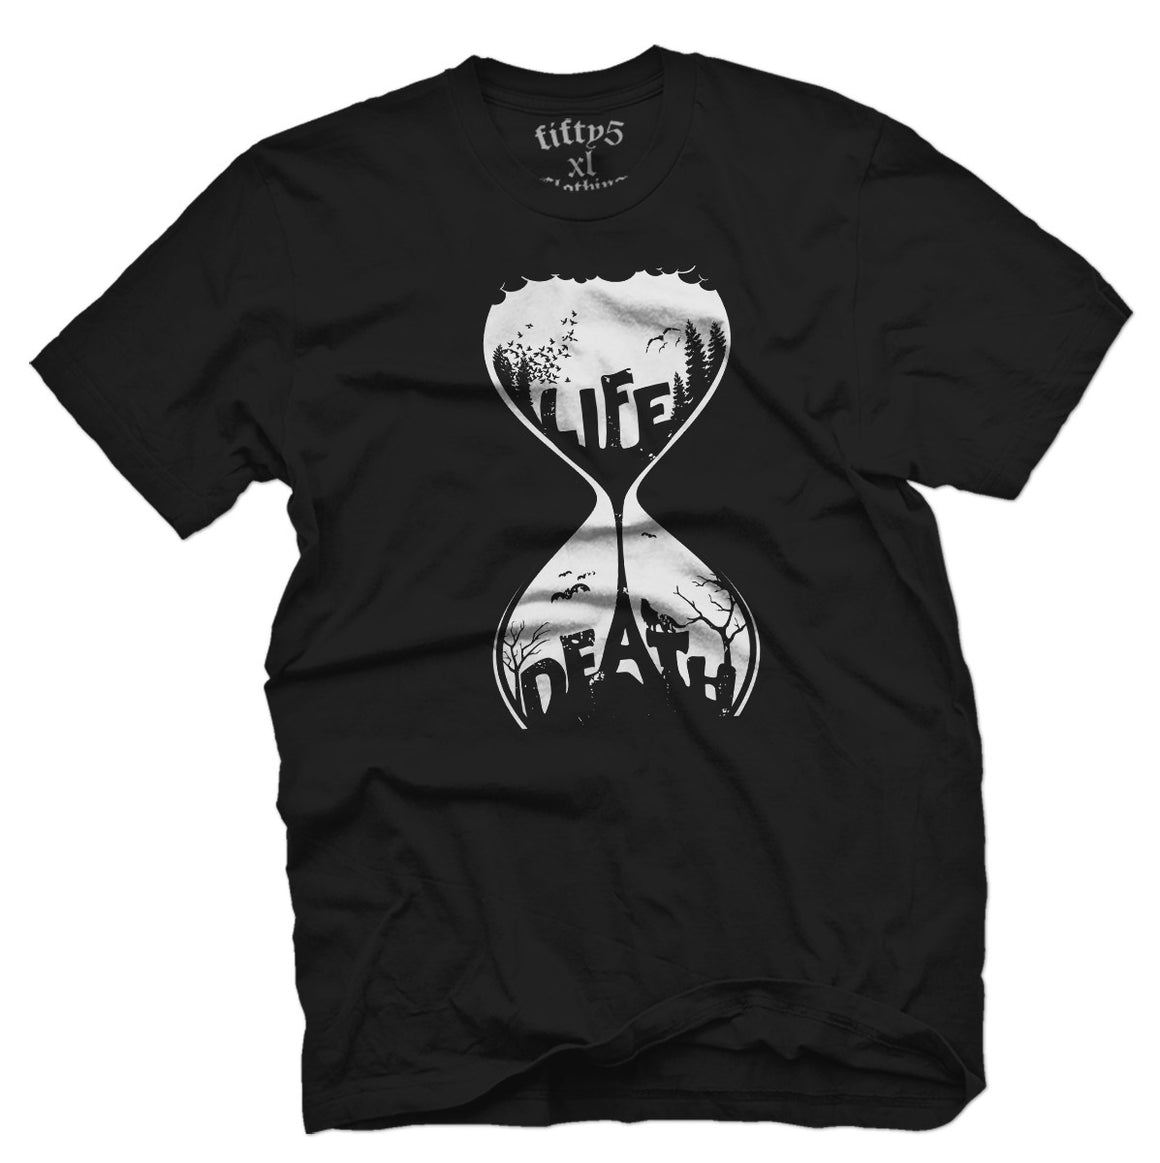 Fifty5 Clothing Life & Death Men's T Shirt